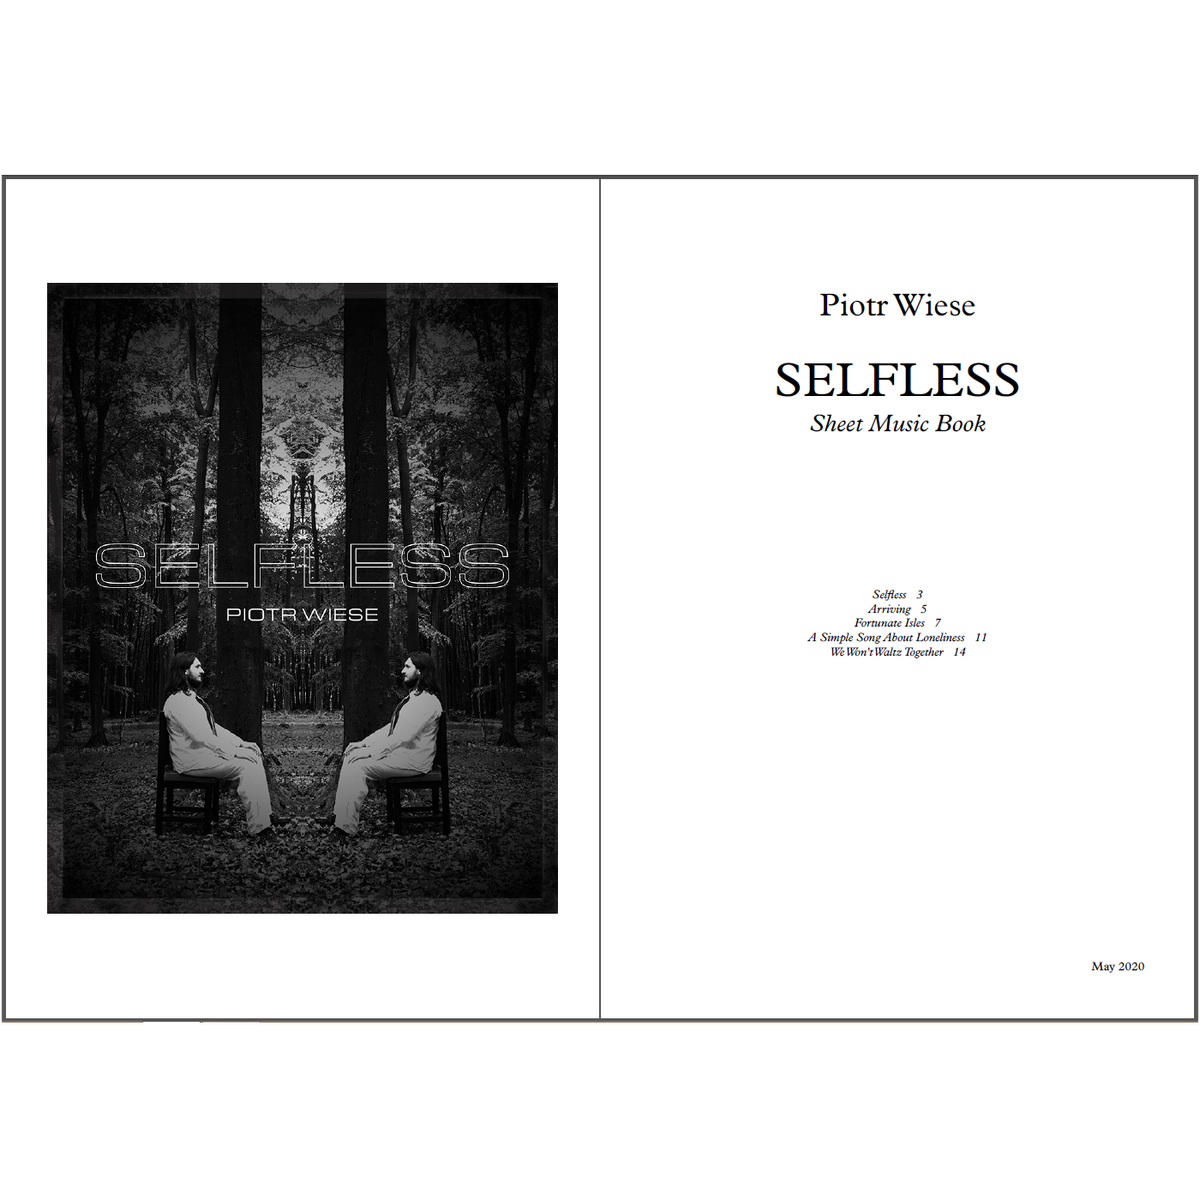 Selfless EP Sheet Music Book (PDF)